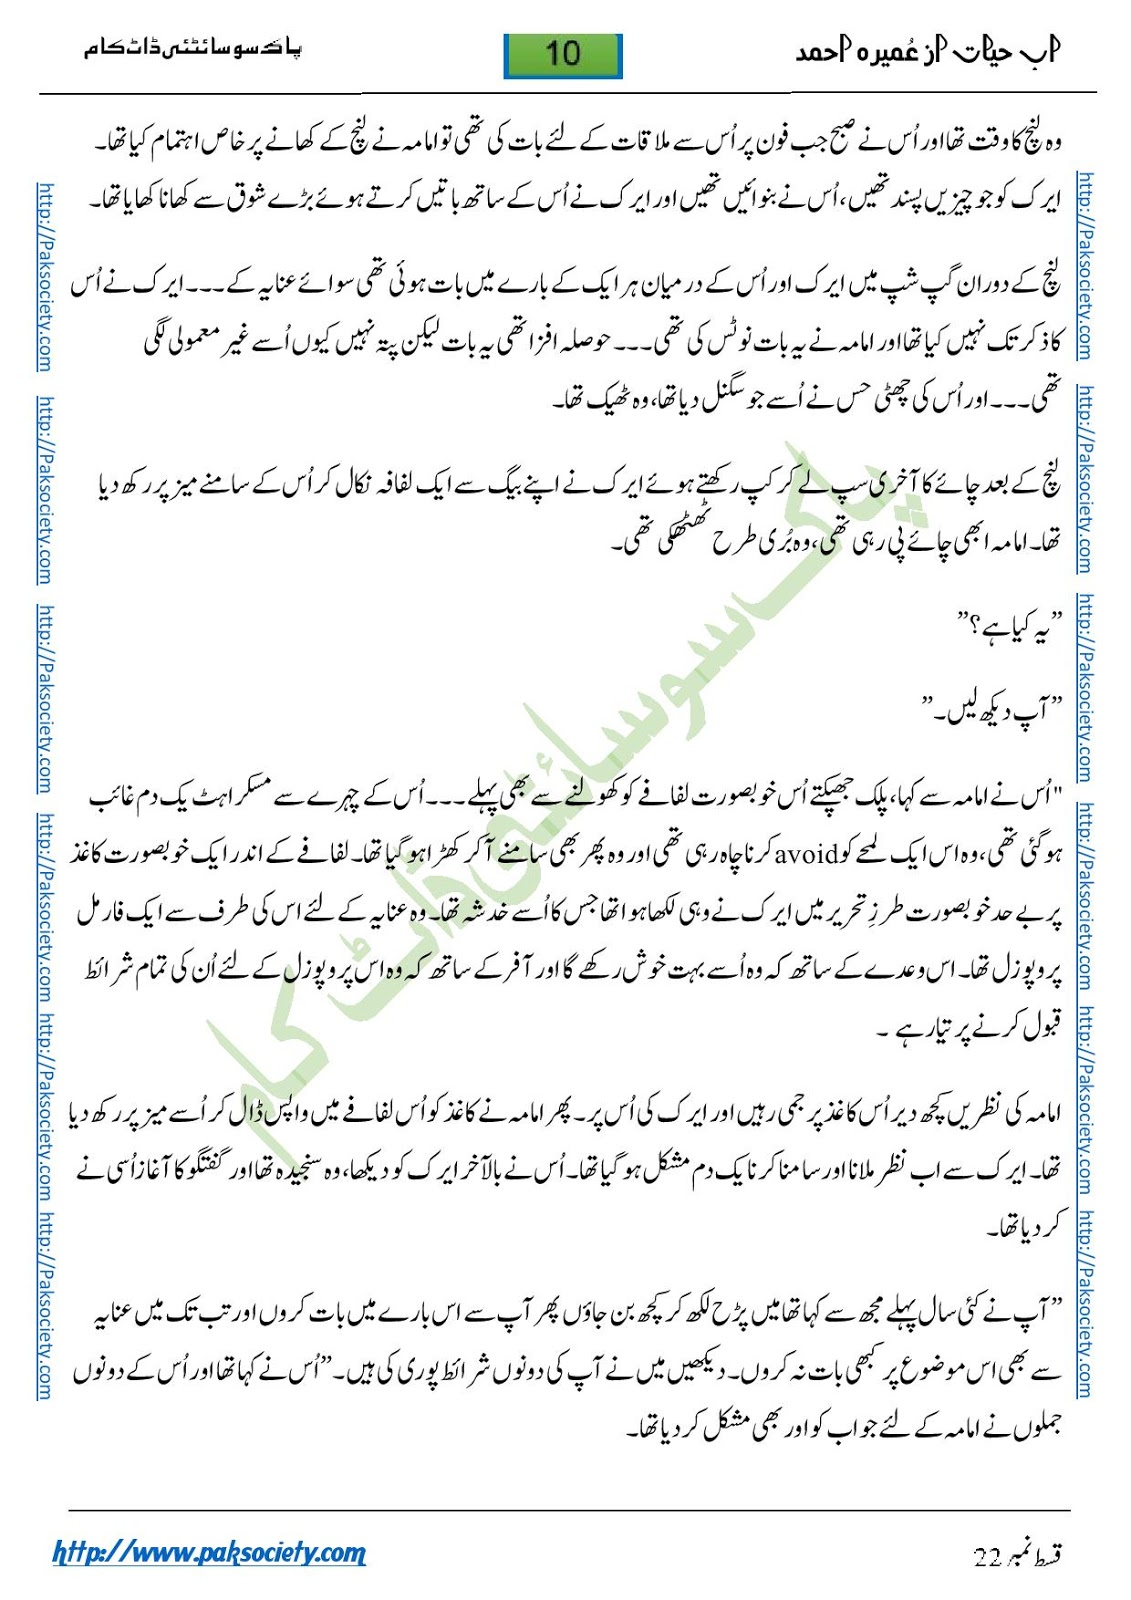 Ahmed hayat pdf aab by complete umera e